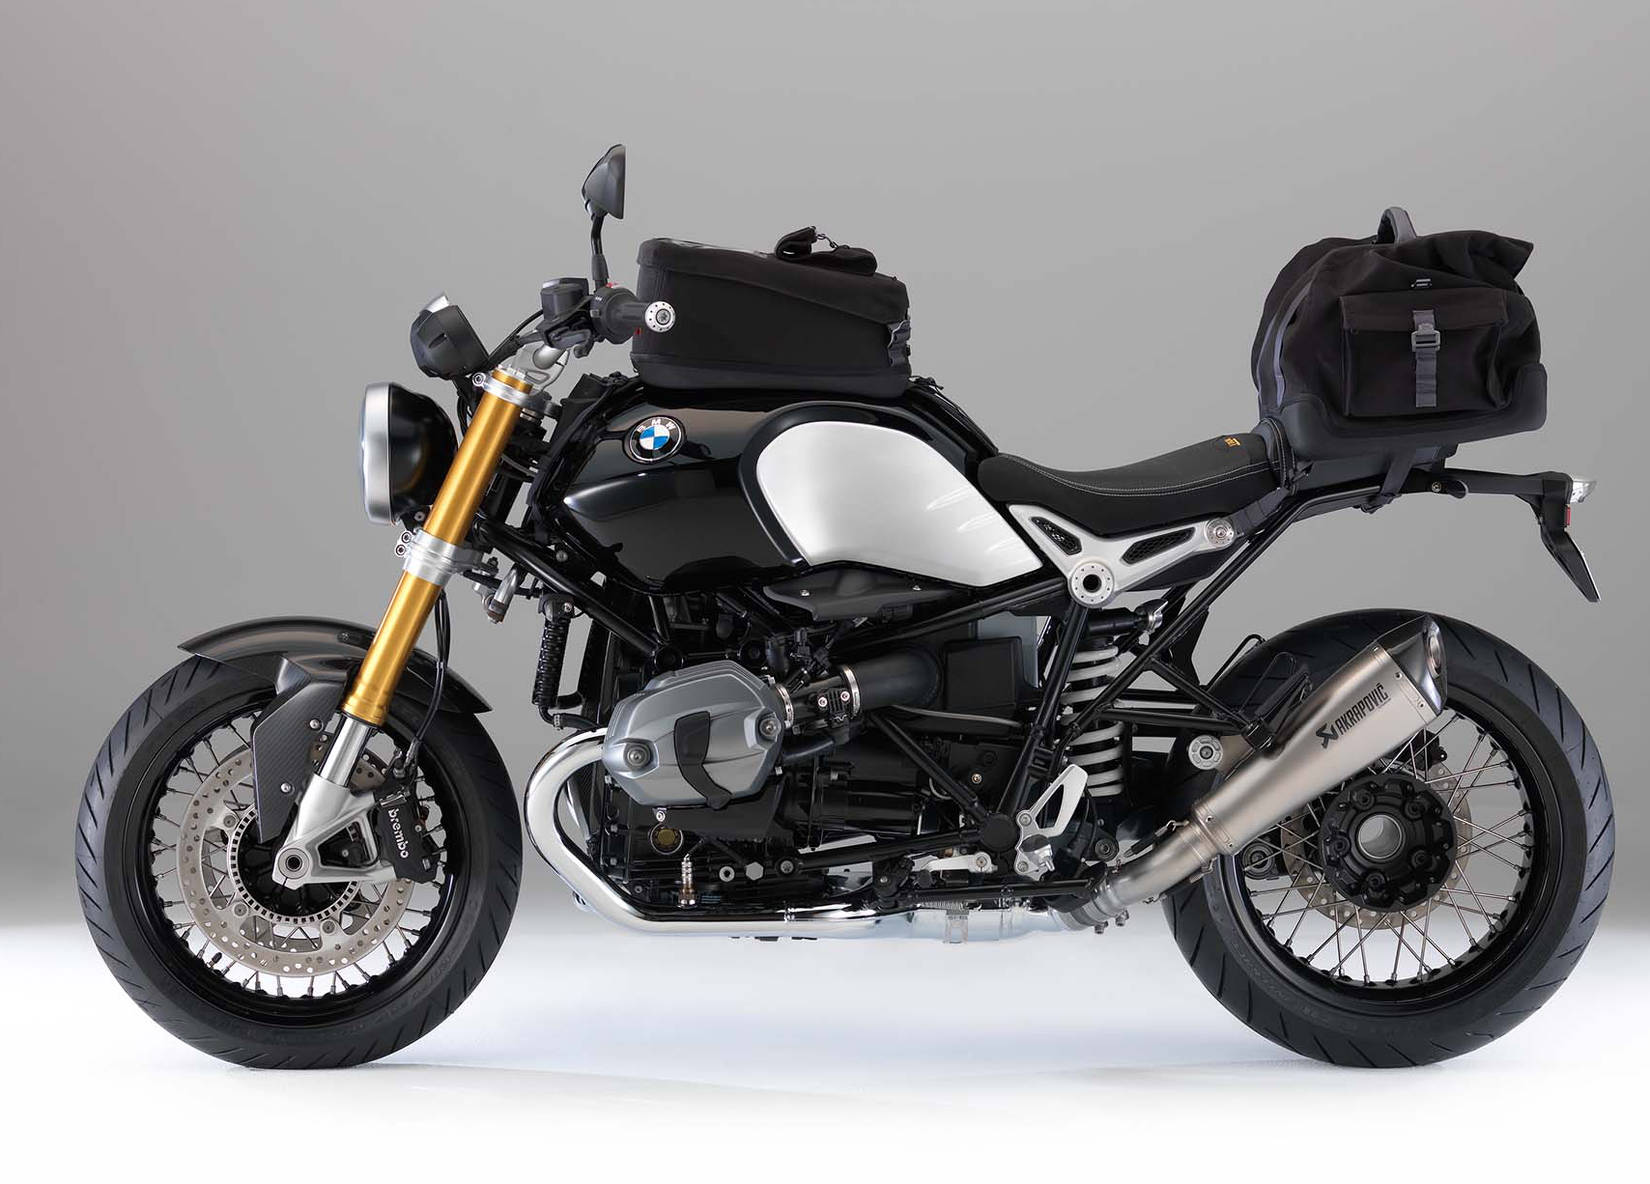 packing the ninet luggage options thread page 20 bmw ninet forum. Black Bedroom Furniture Sets. Home Design Ideas